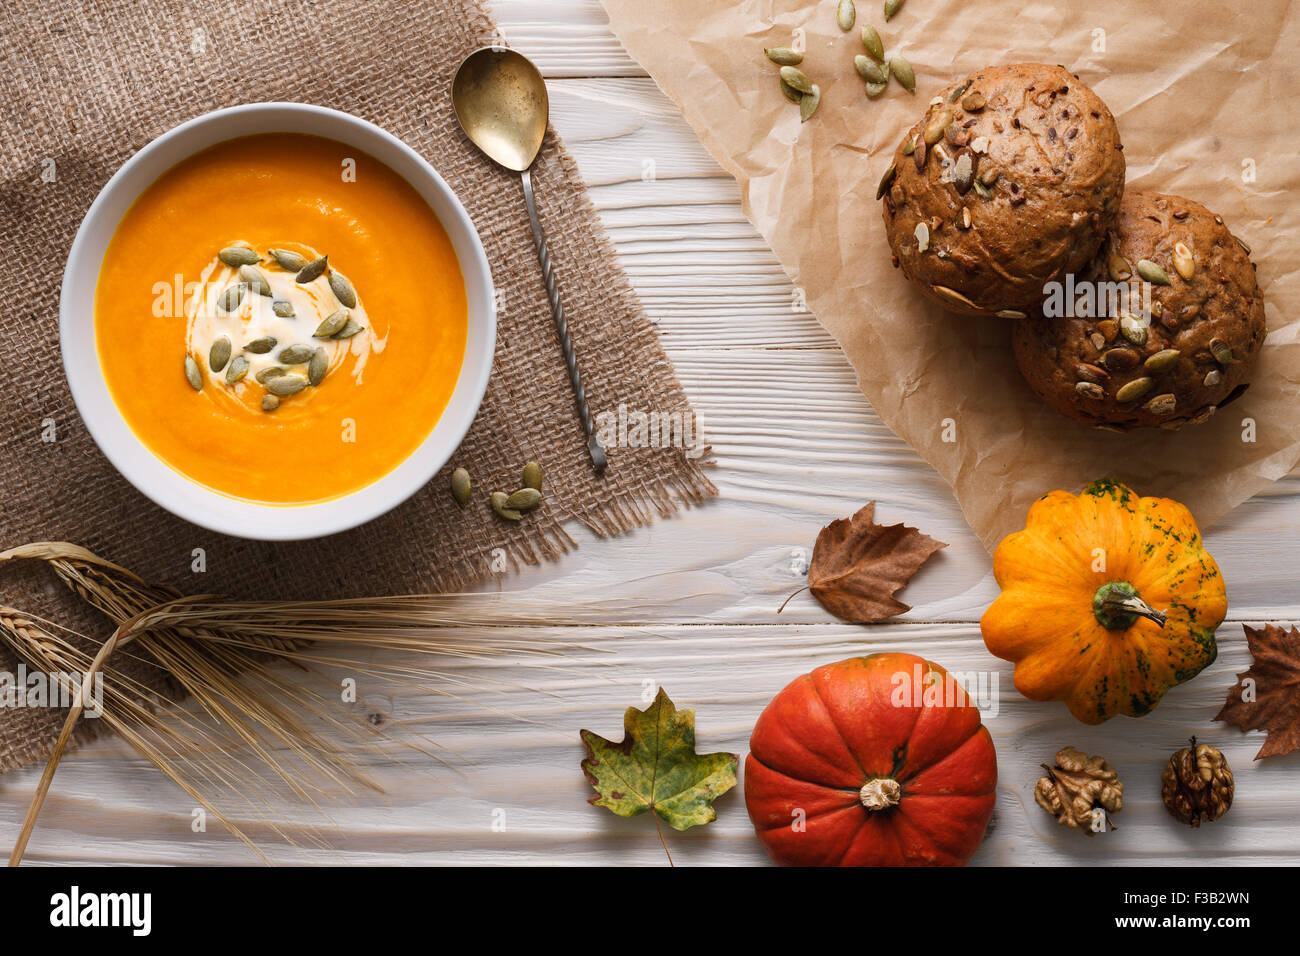 Traditional pumpkin soup with seeds and fresh just baked rye bans on a white wooden background. Stock Photo